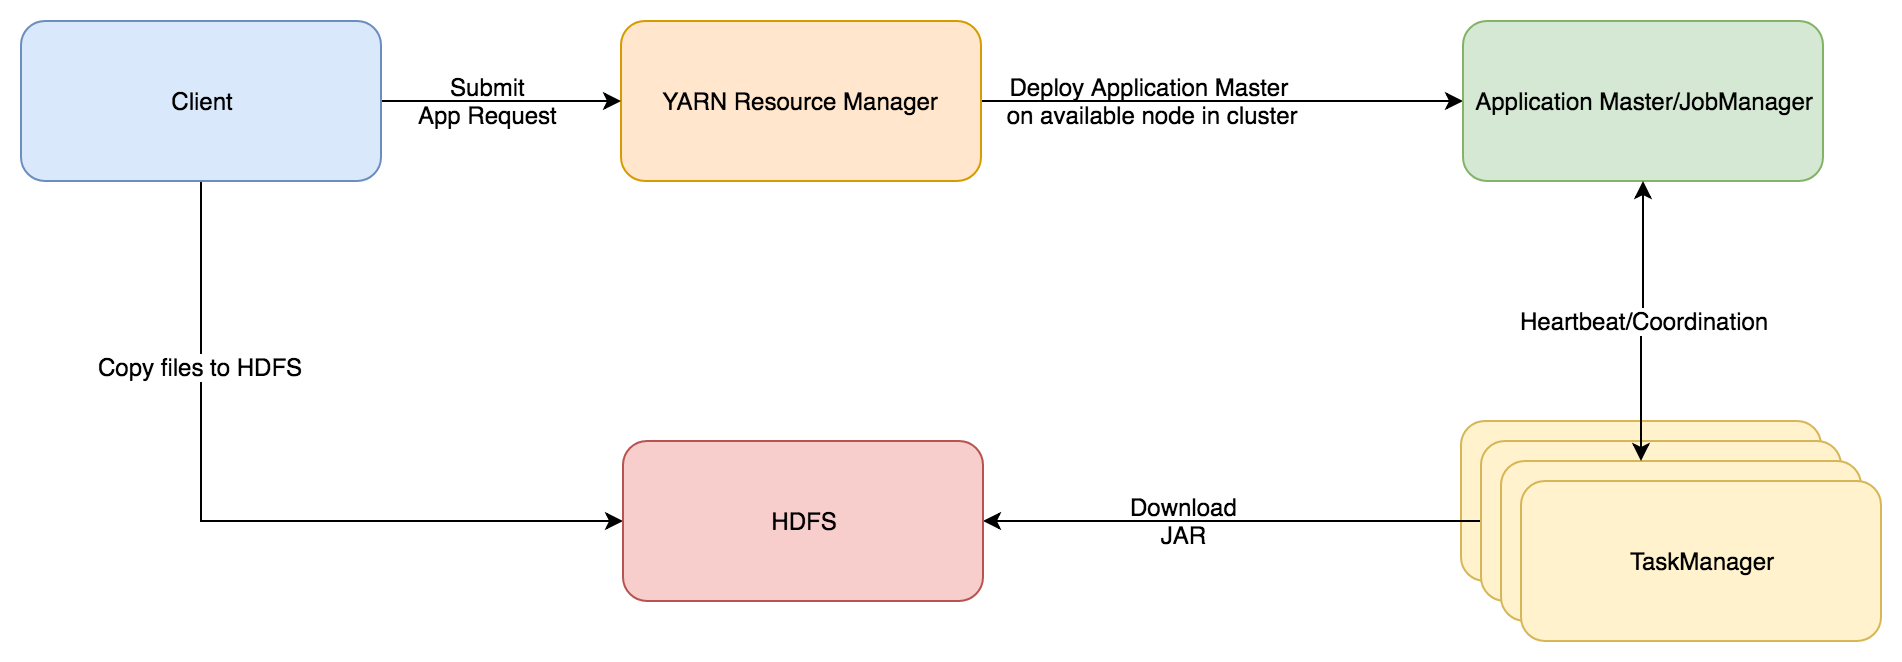 How to Run Apache Flink Effectively On YARN? - codeburst